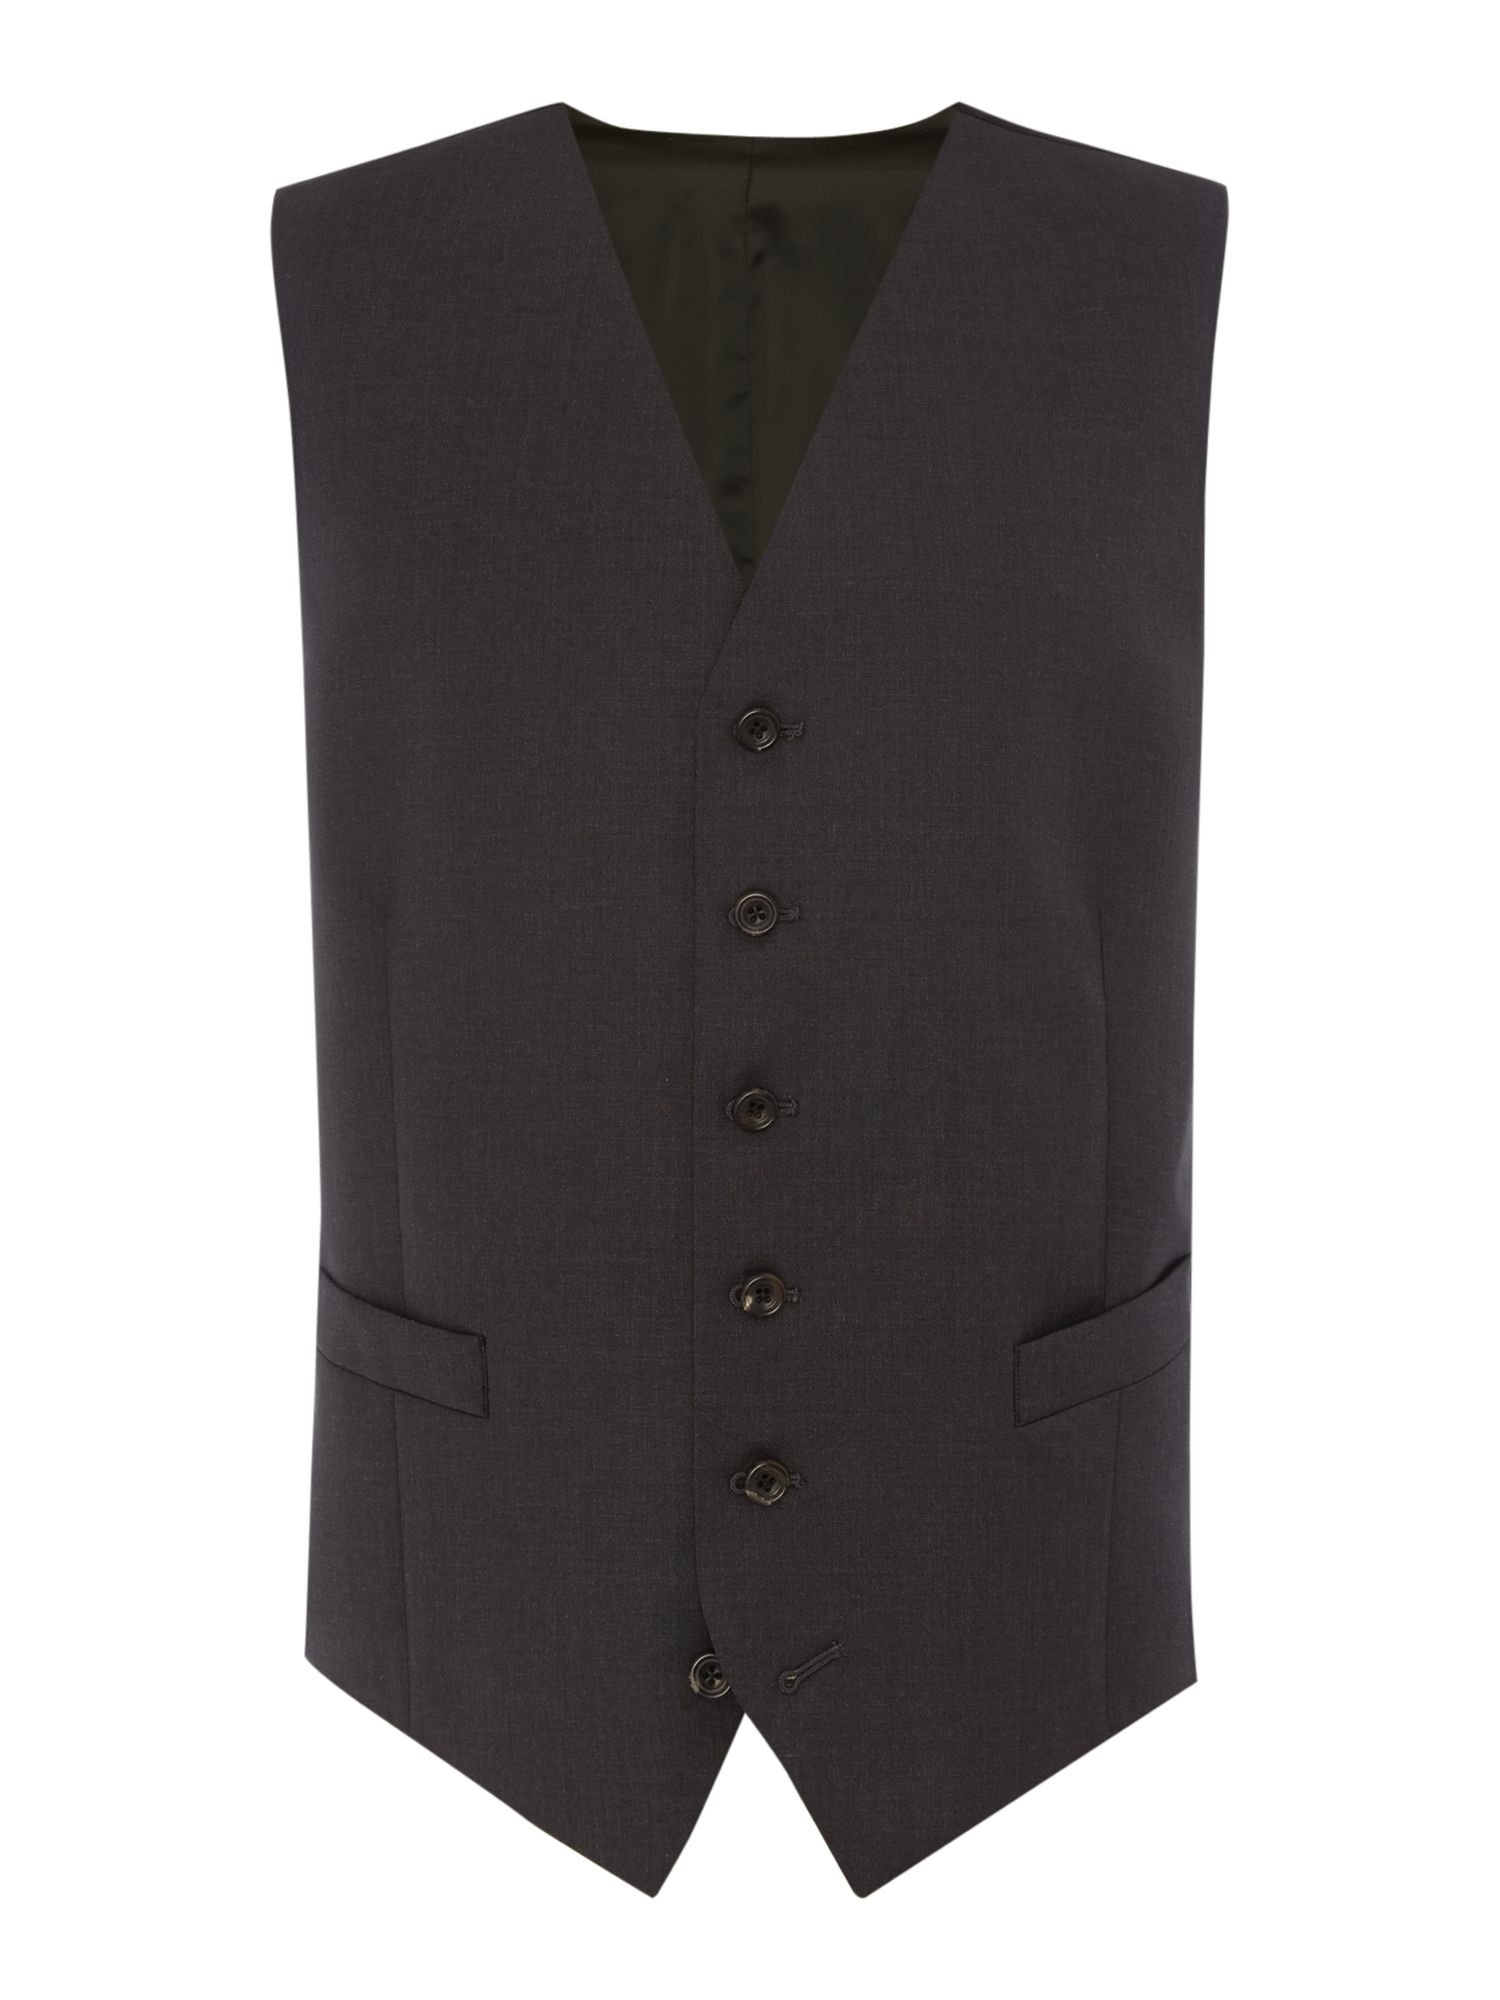 Men's Chester Barrie Plain Tailored Fit Waistcoat, Charcoal